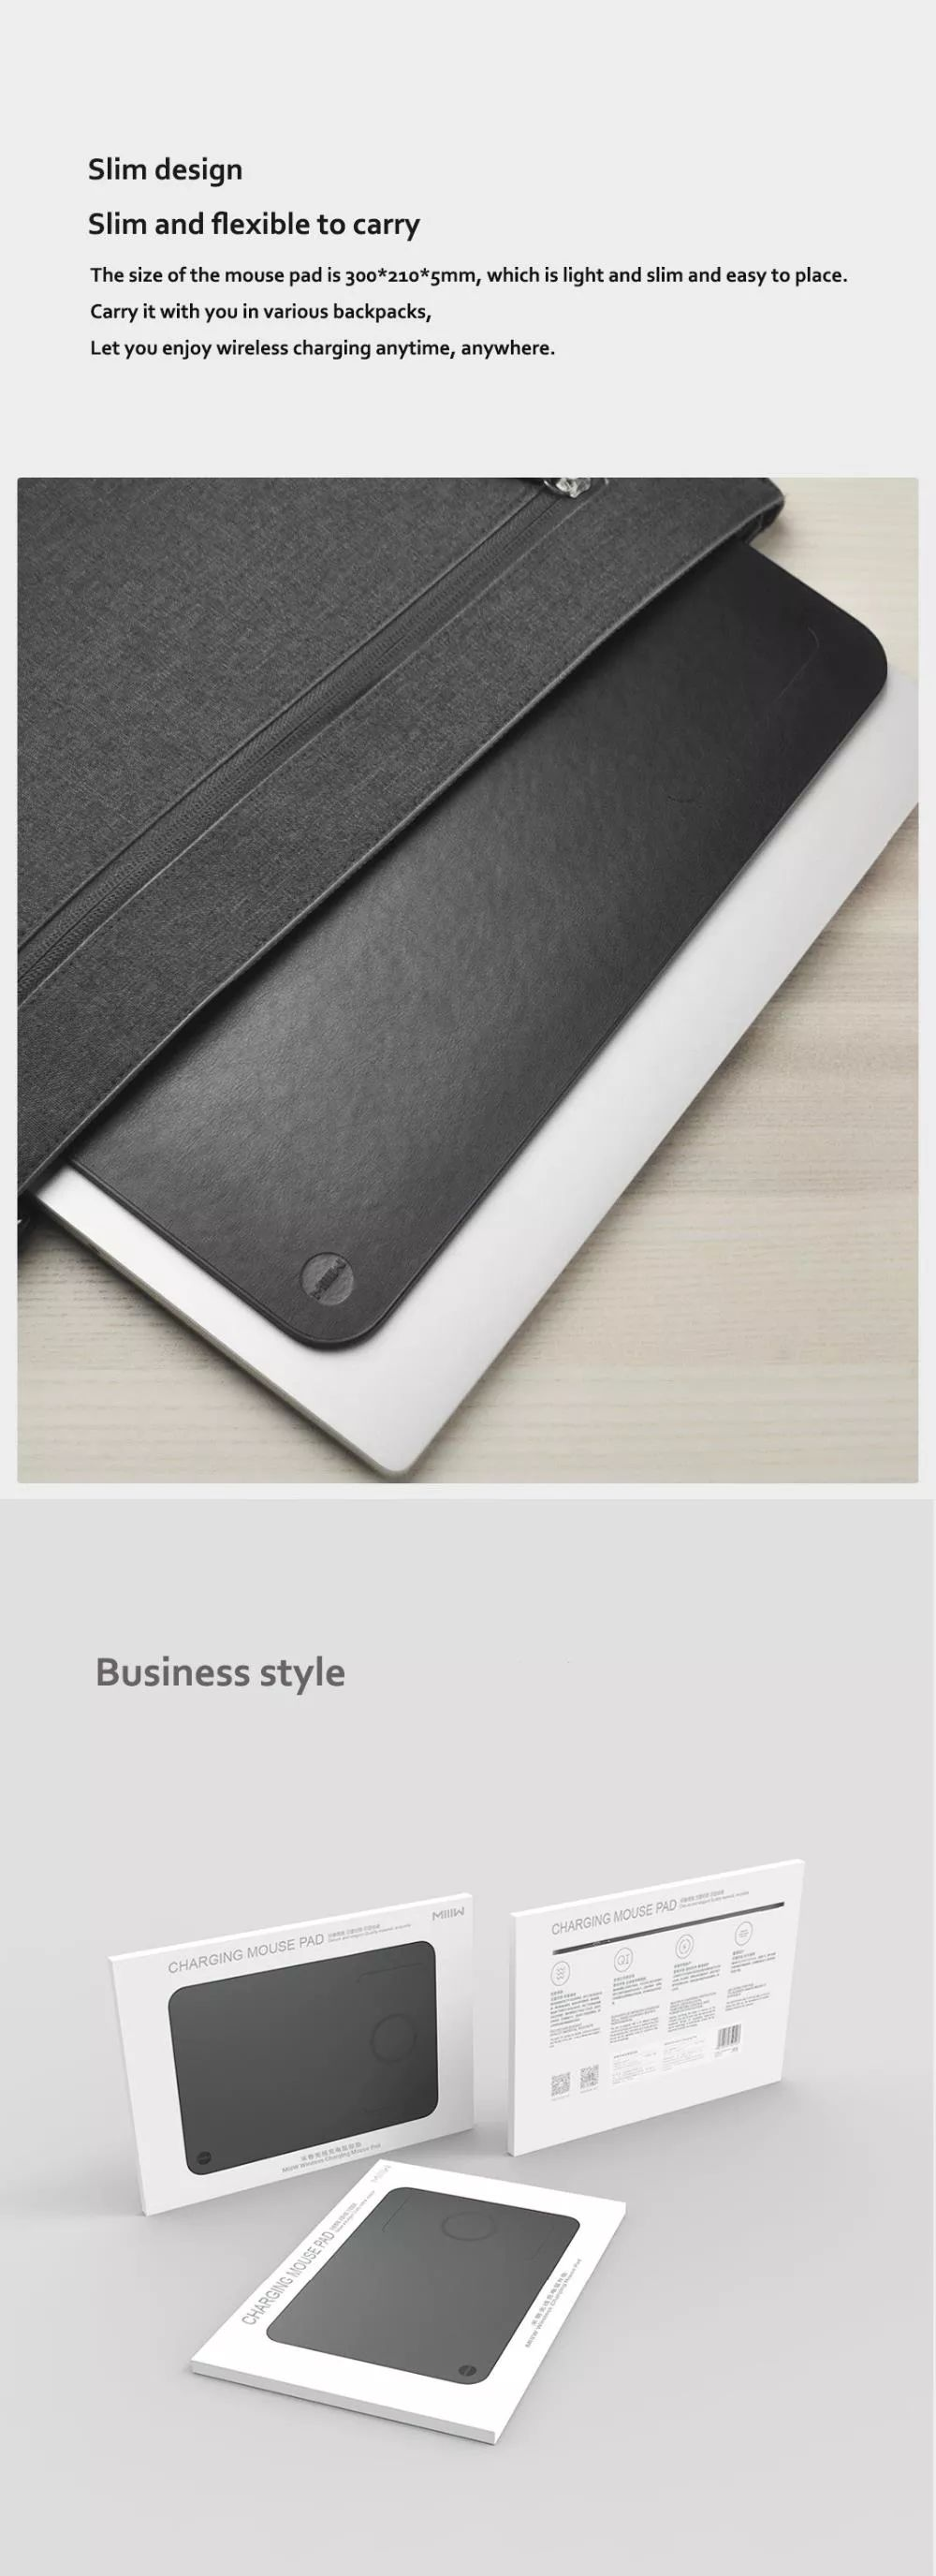 Xiaomi Miiiw Qi Wireless Charger Pu Leather Mouse Pad (3)